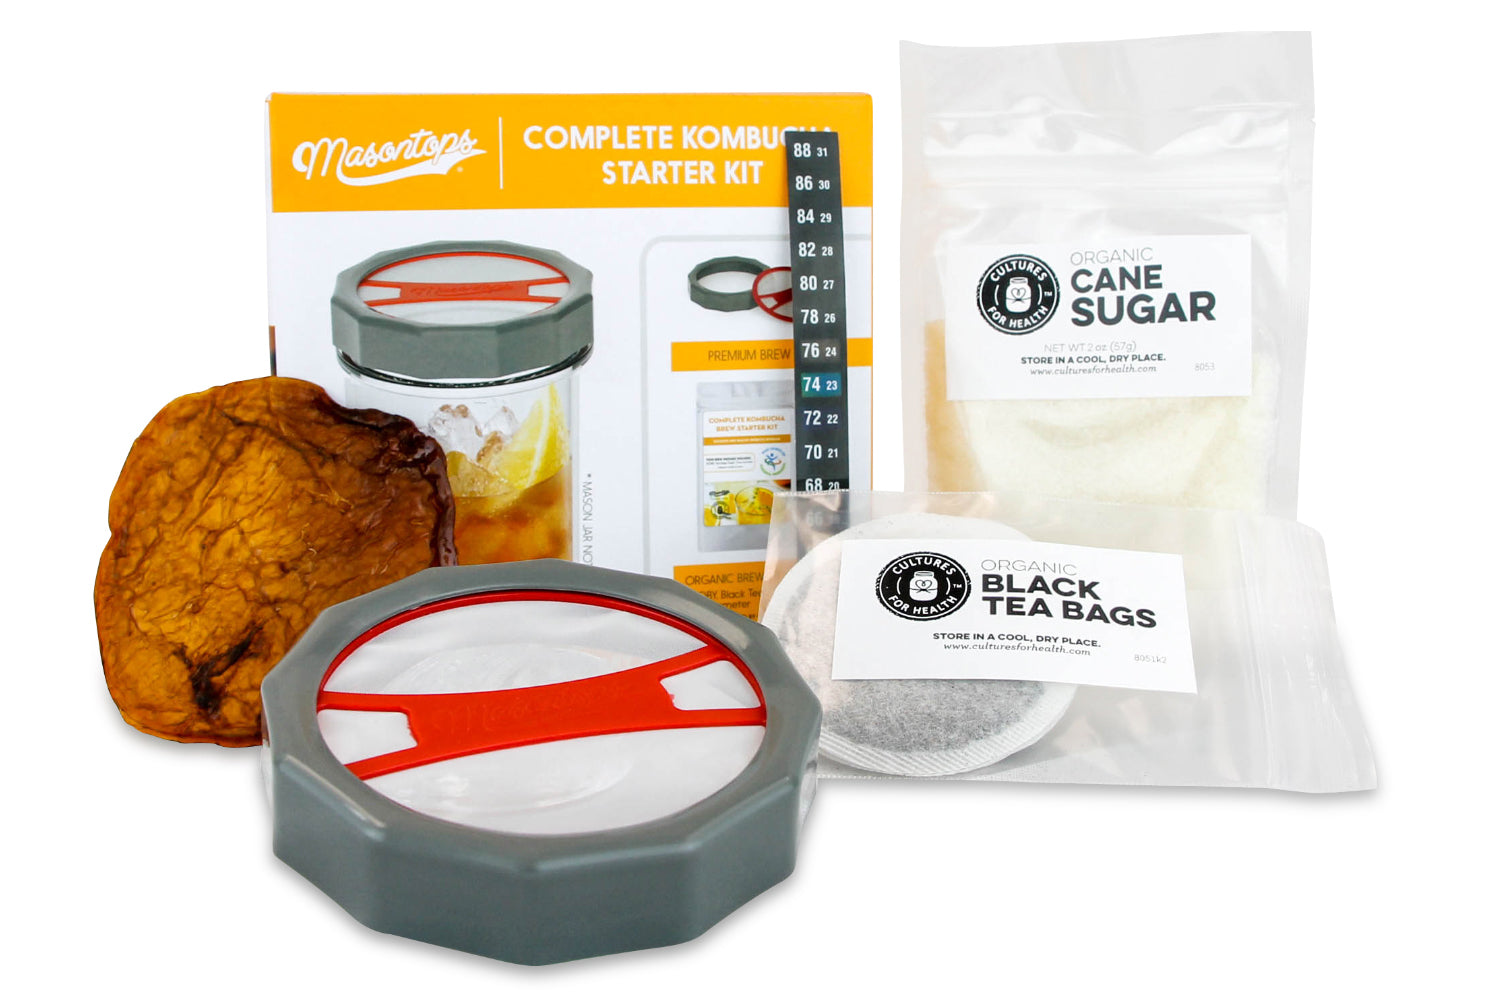 Masontops Complete Kombucha Starter Kit contents with scoby, tea bags, cane sugar and jar lid